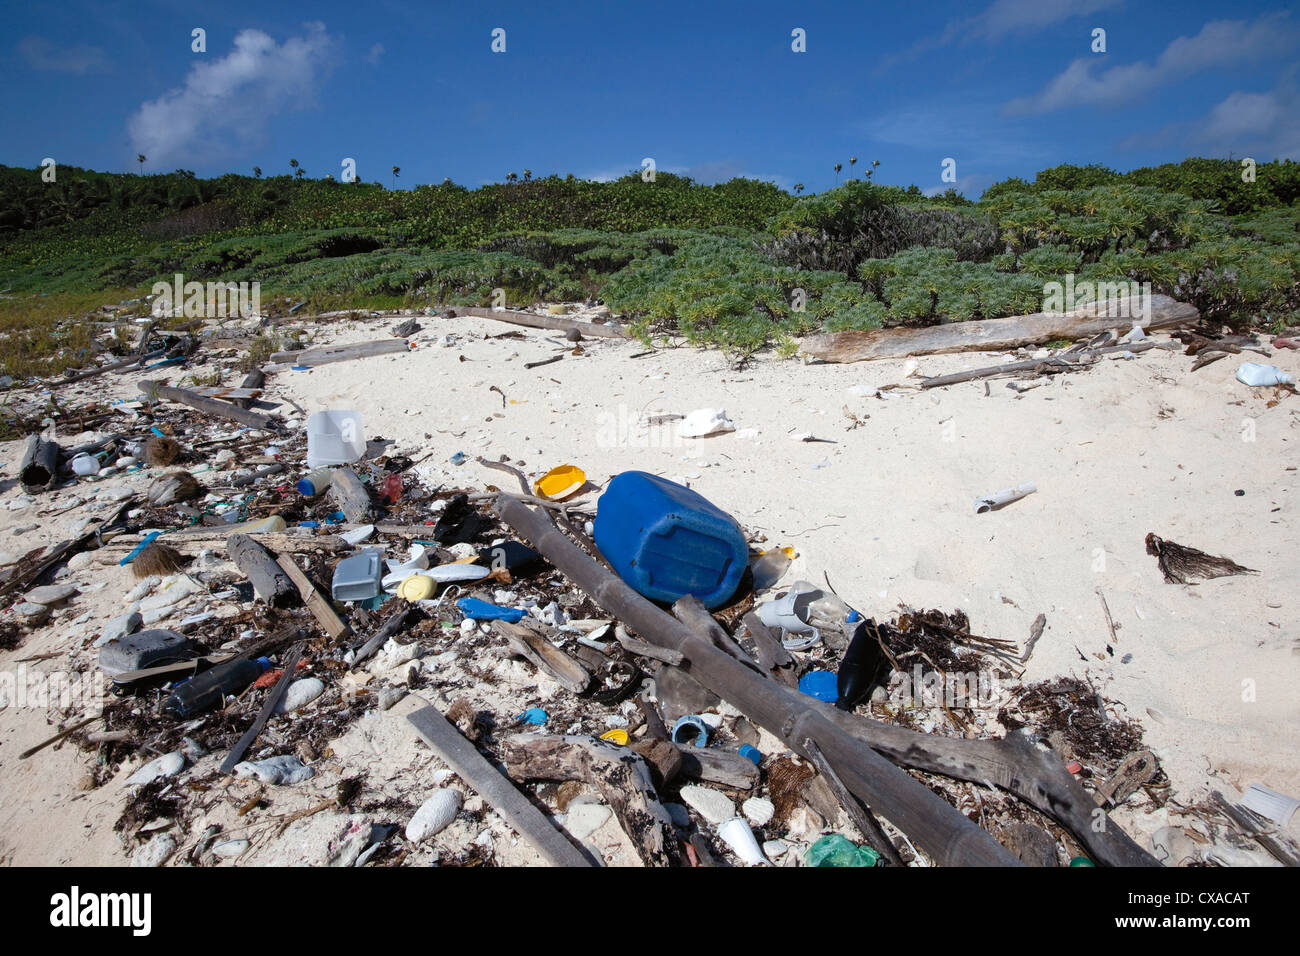 Trash found along the coast of the Swan Islands off the coast of Honduras. - Stock Image